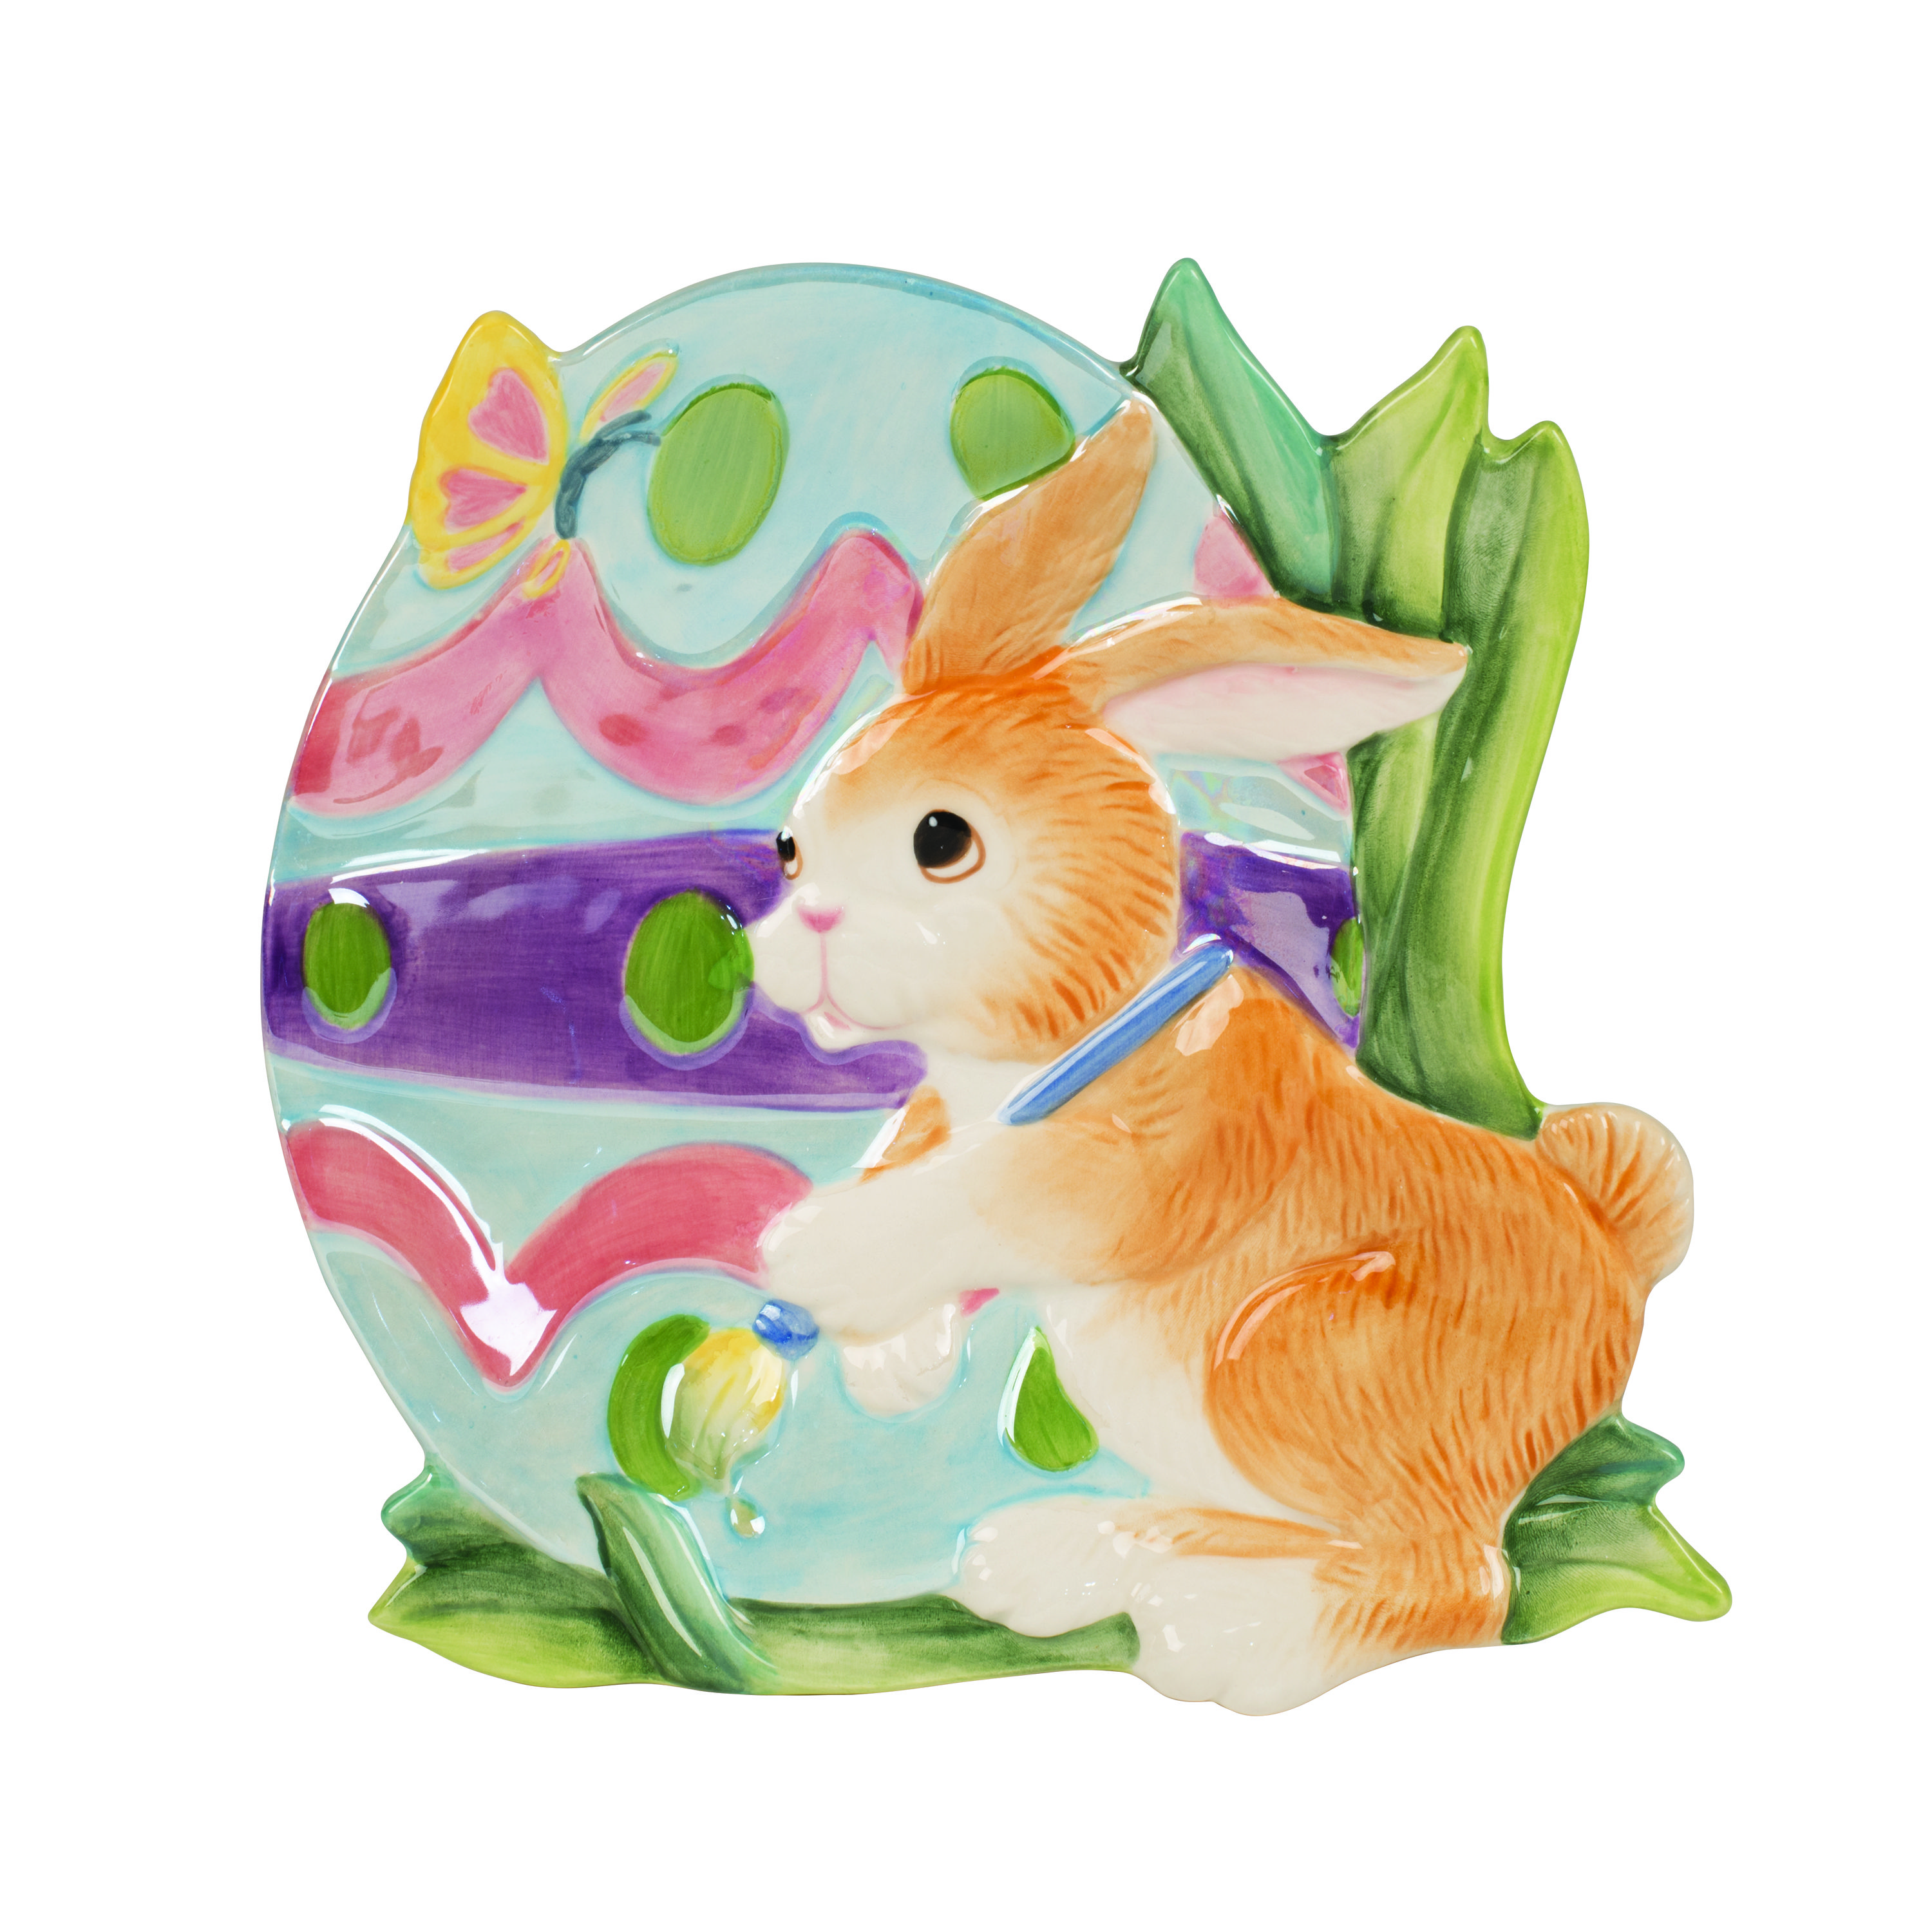 blackberry rabbit accent plate bunny plate fitz and floyd all